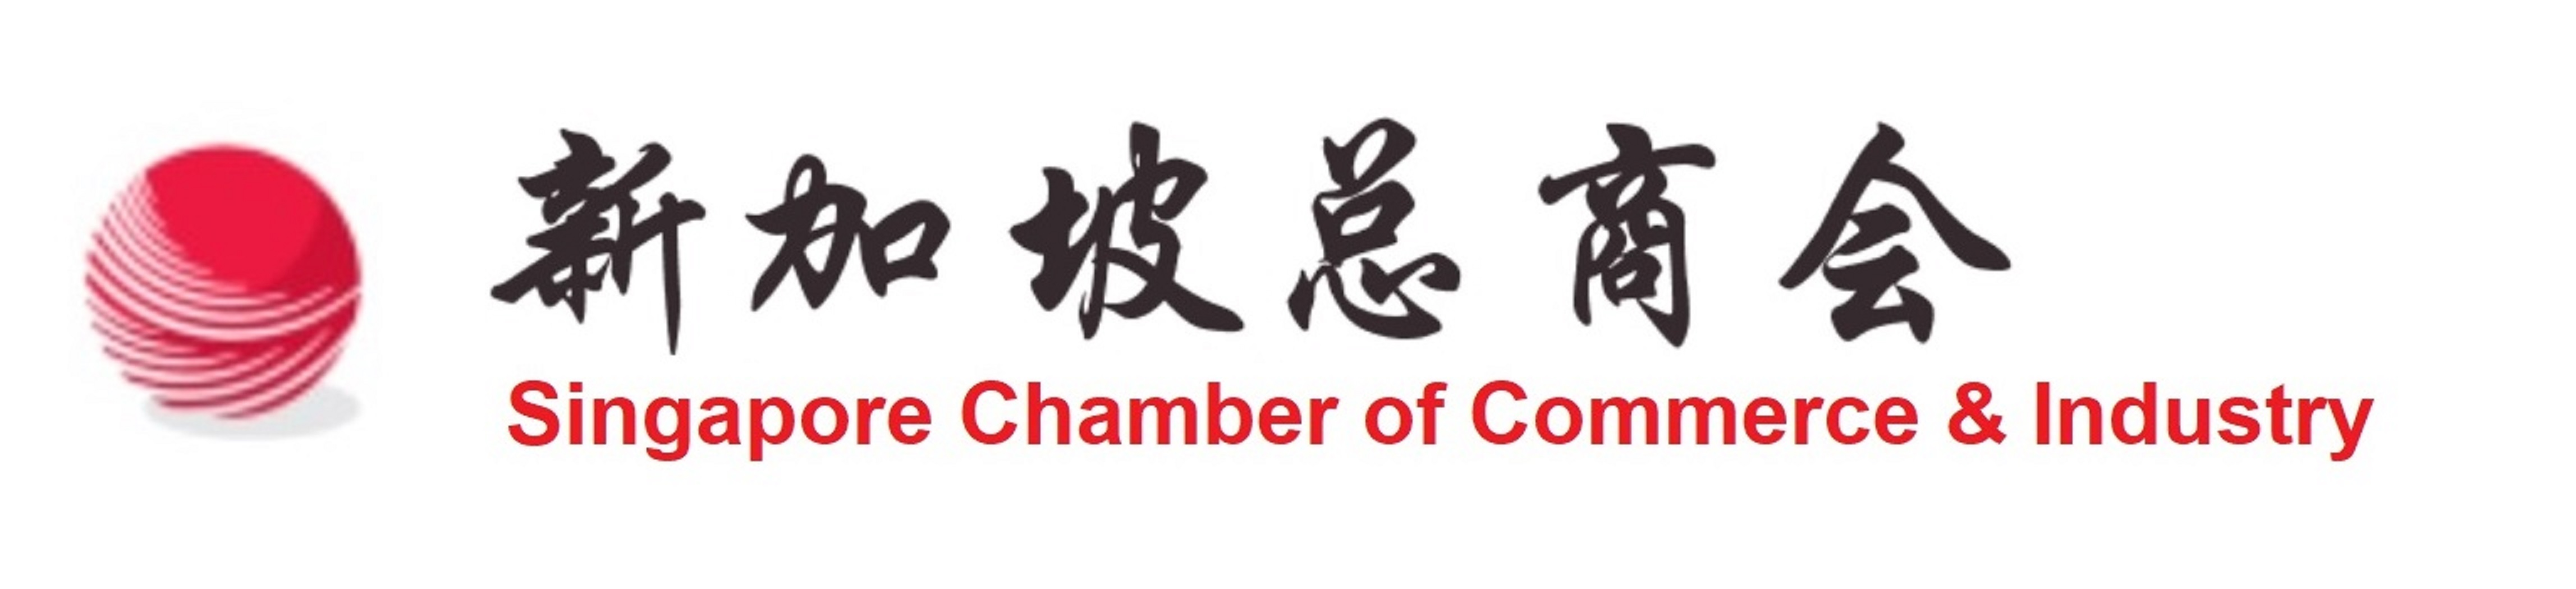 Singapore Chamber of Commerce & Industry